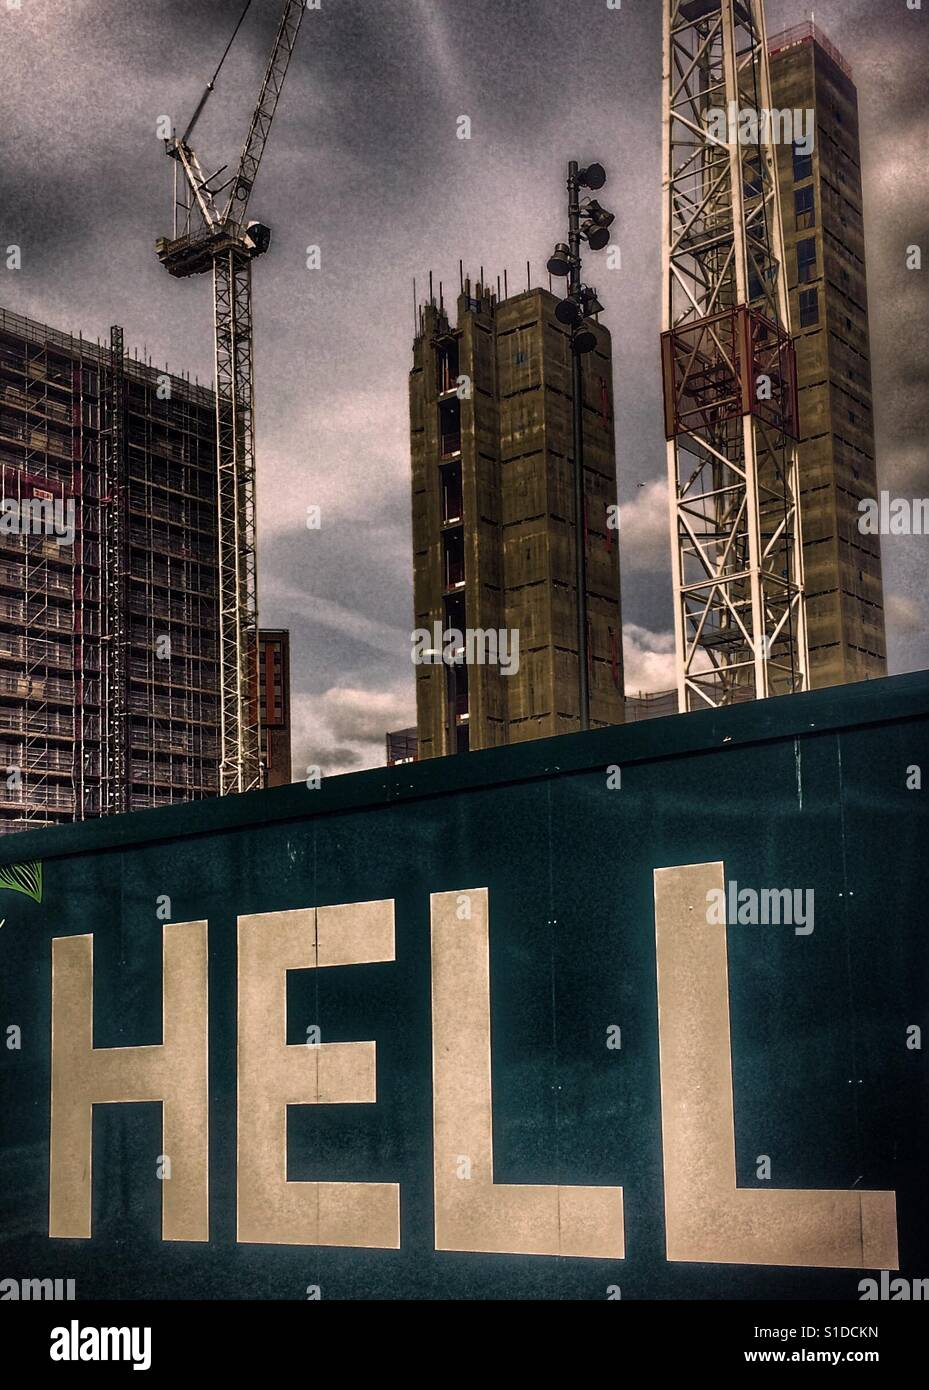 Hell of redevelopment - Stock Image